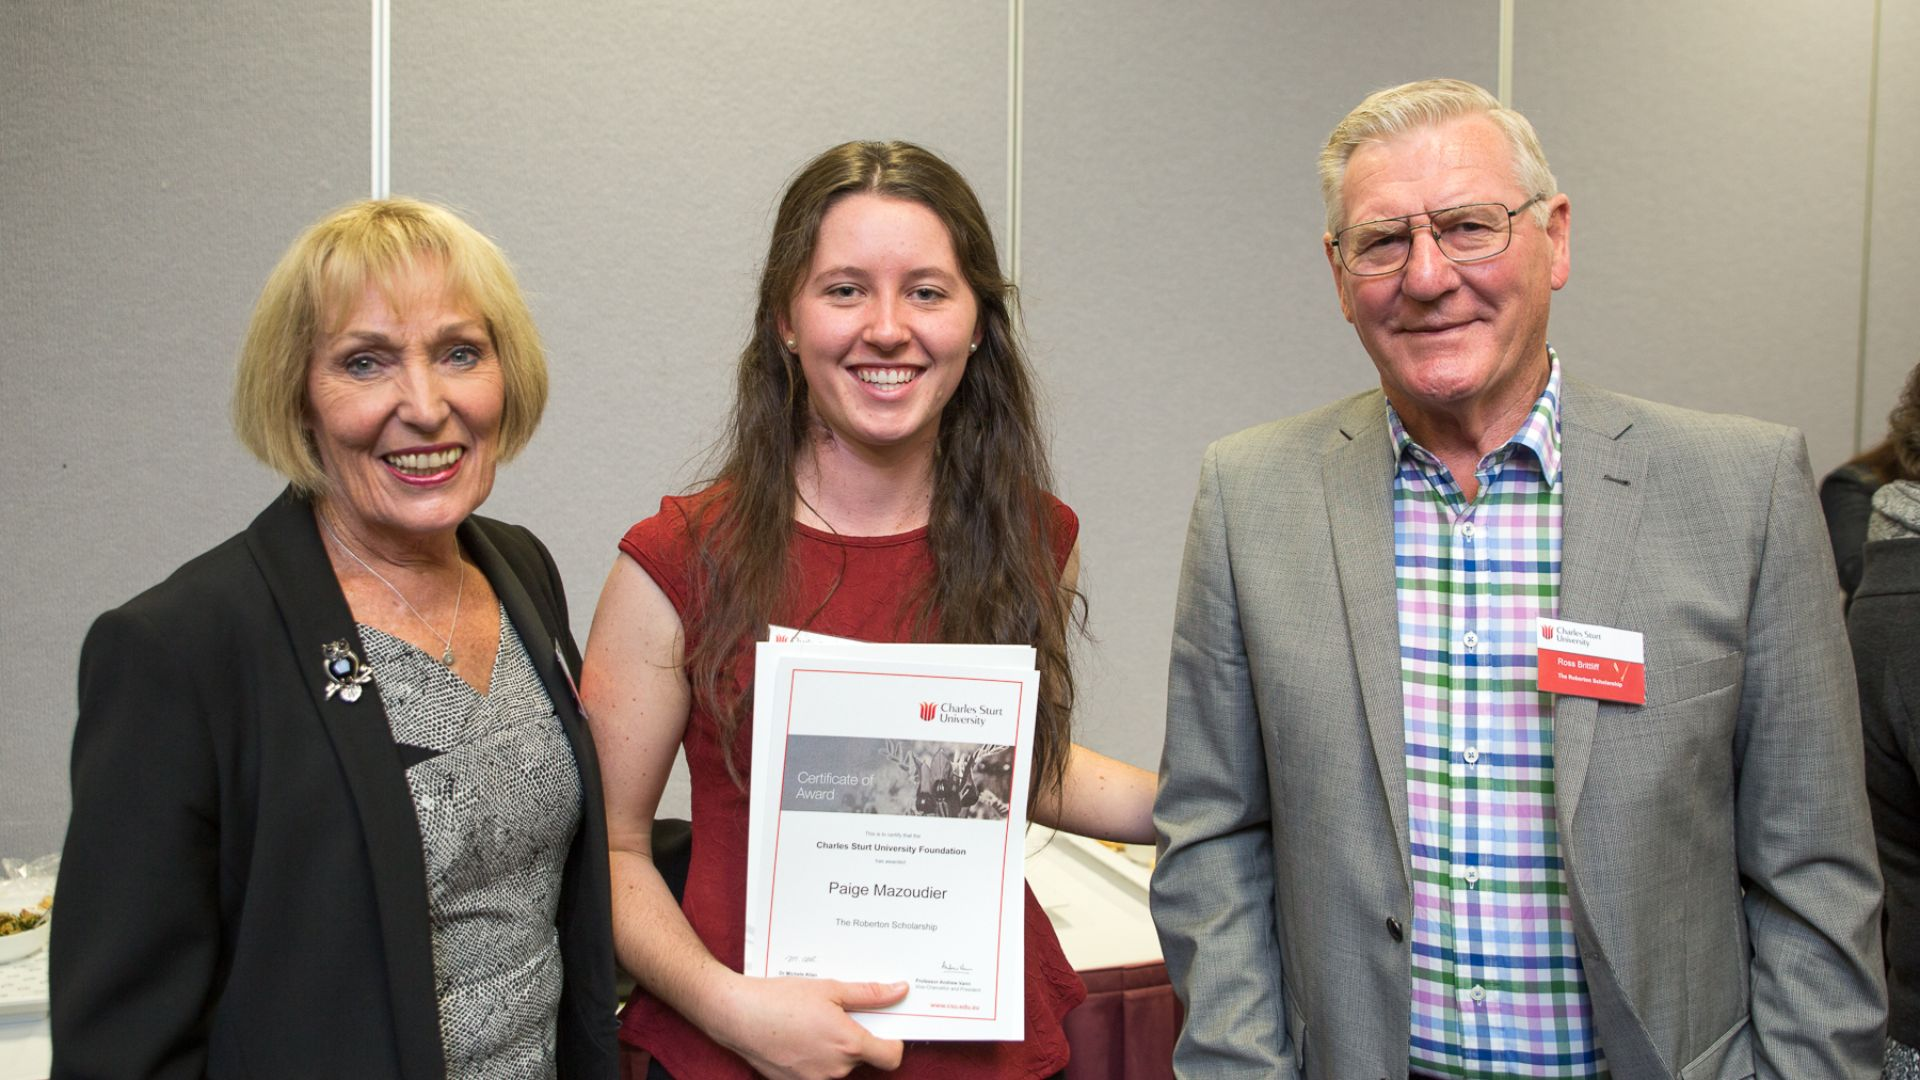 Charles Sturt graduates recommend students apply for scholarships